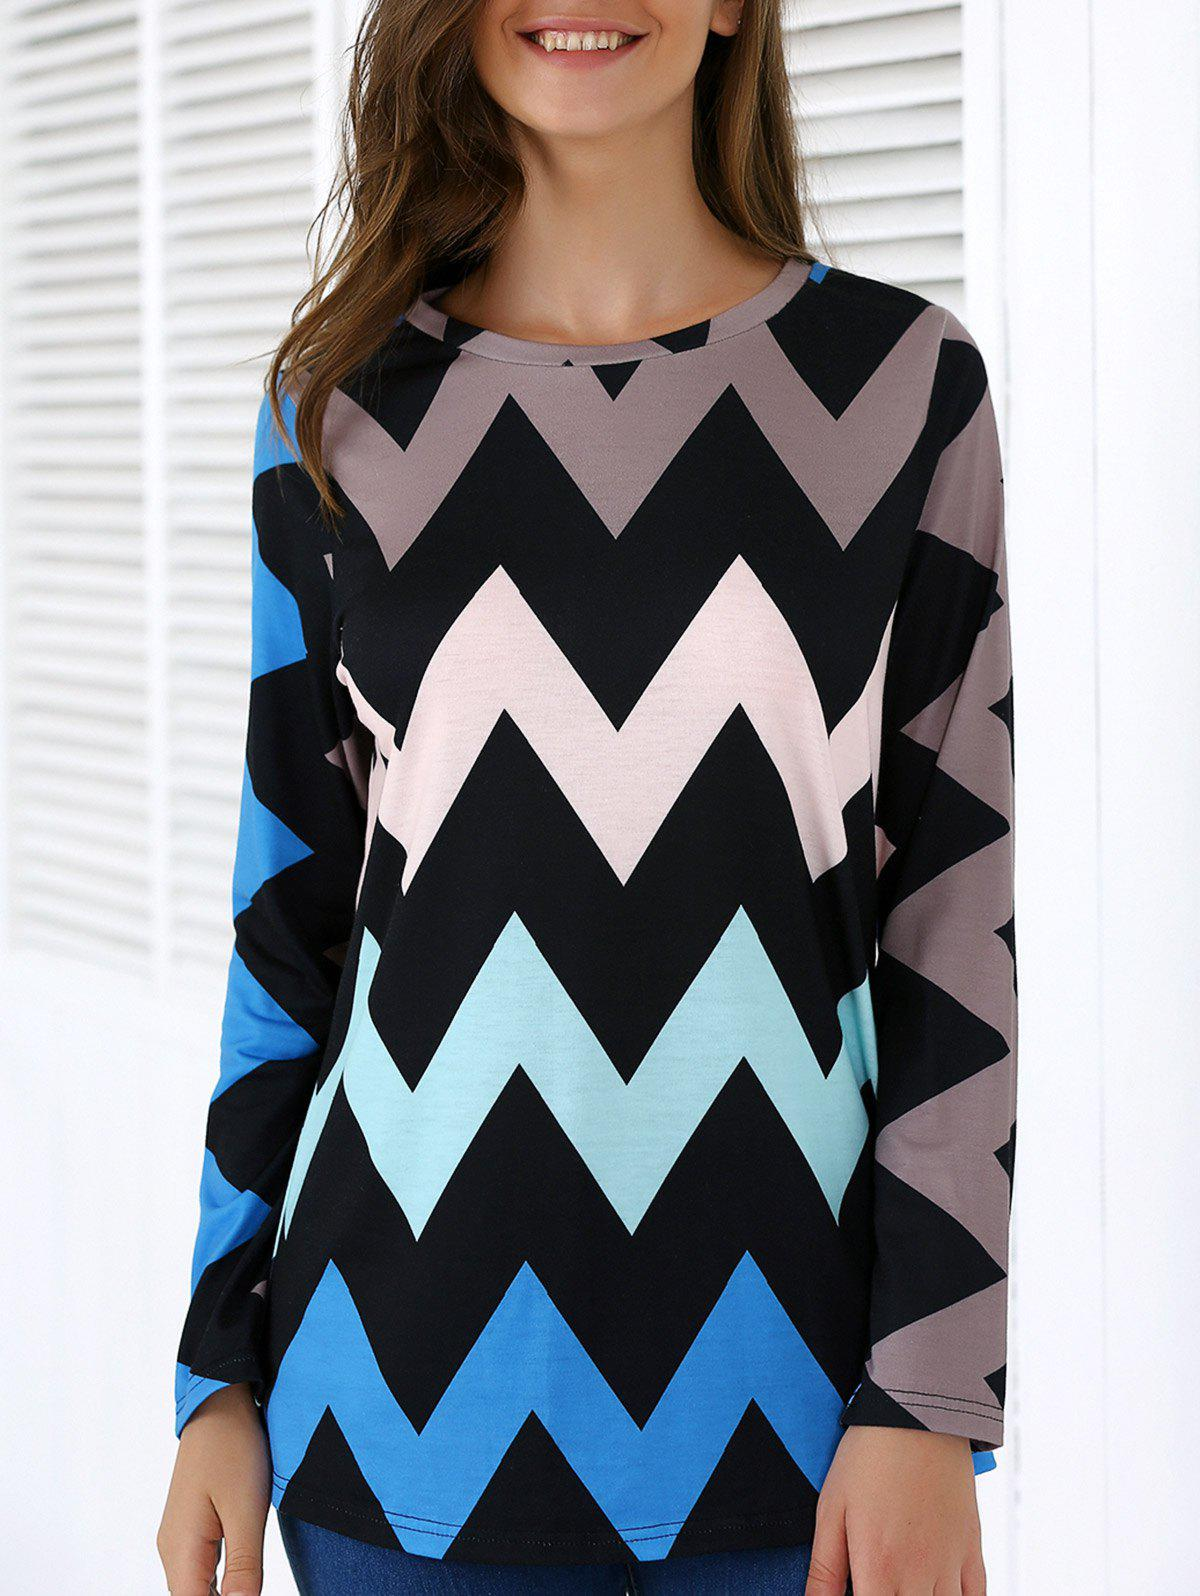 Chevron Print Long Sleeve T-Shirt